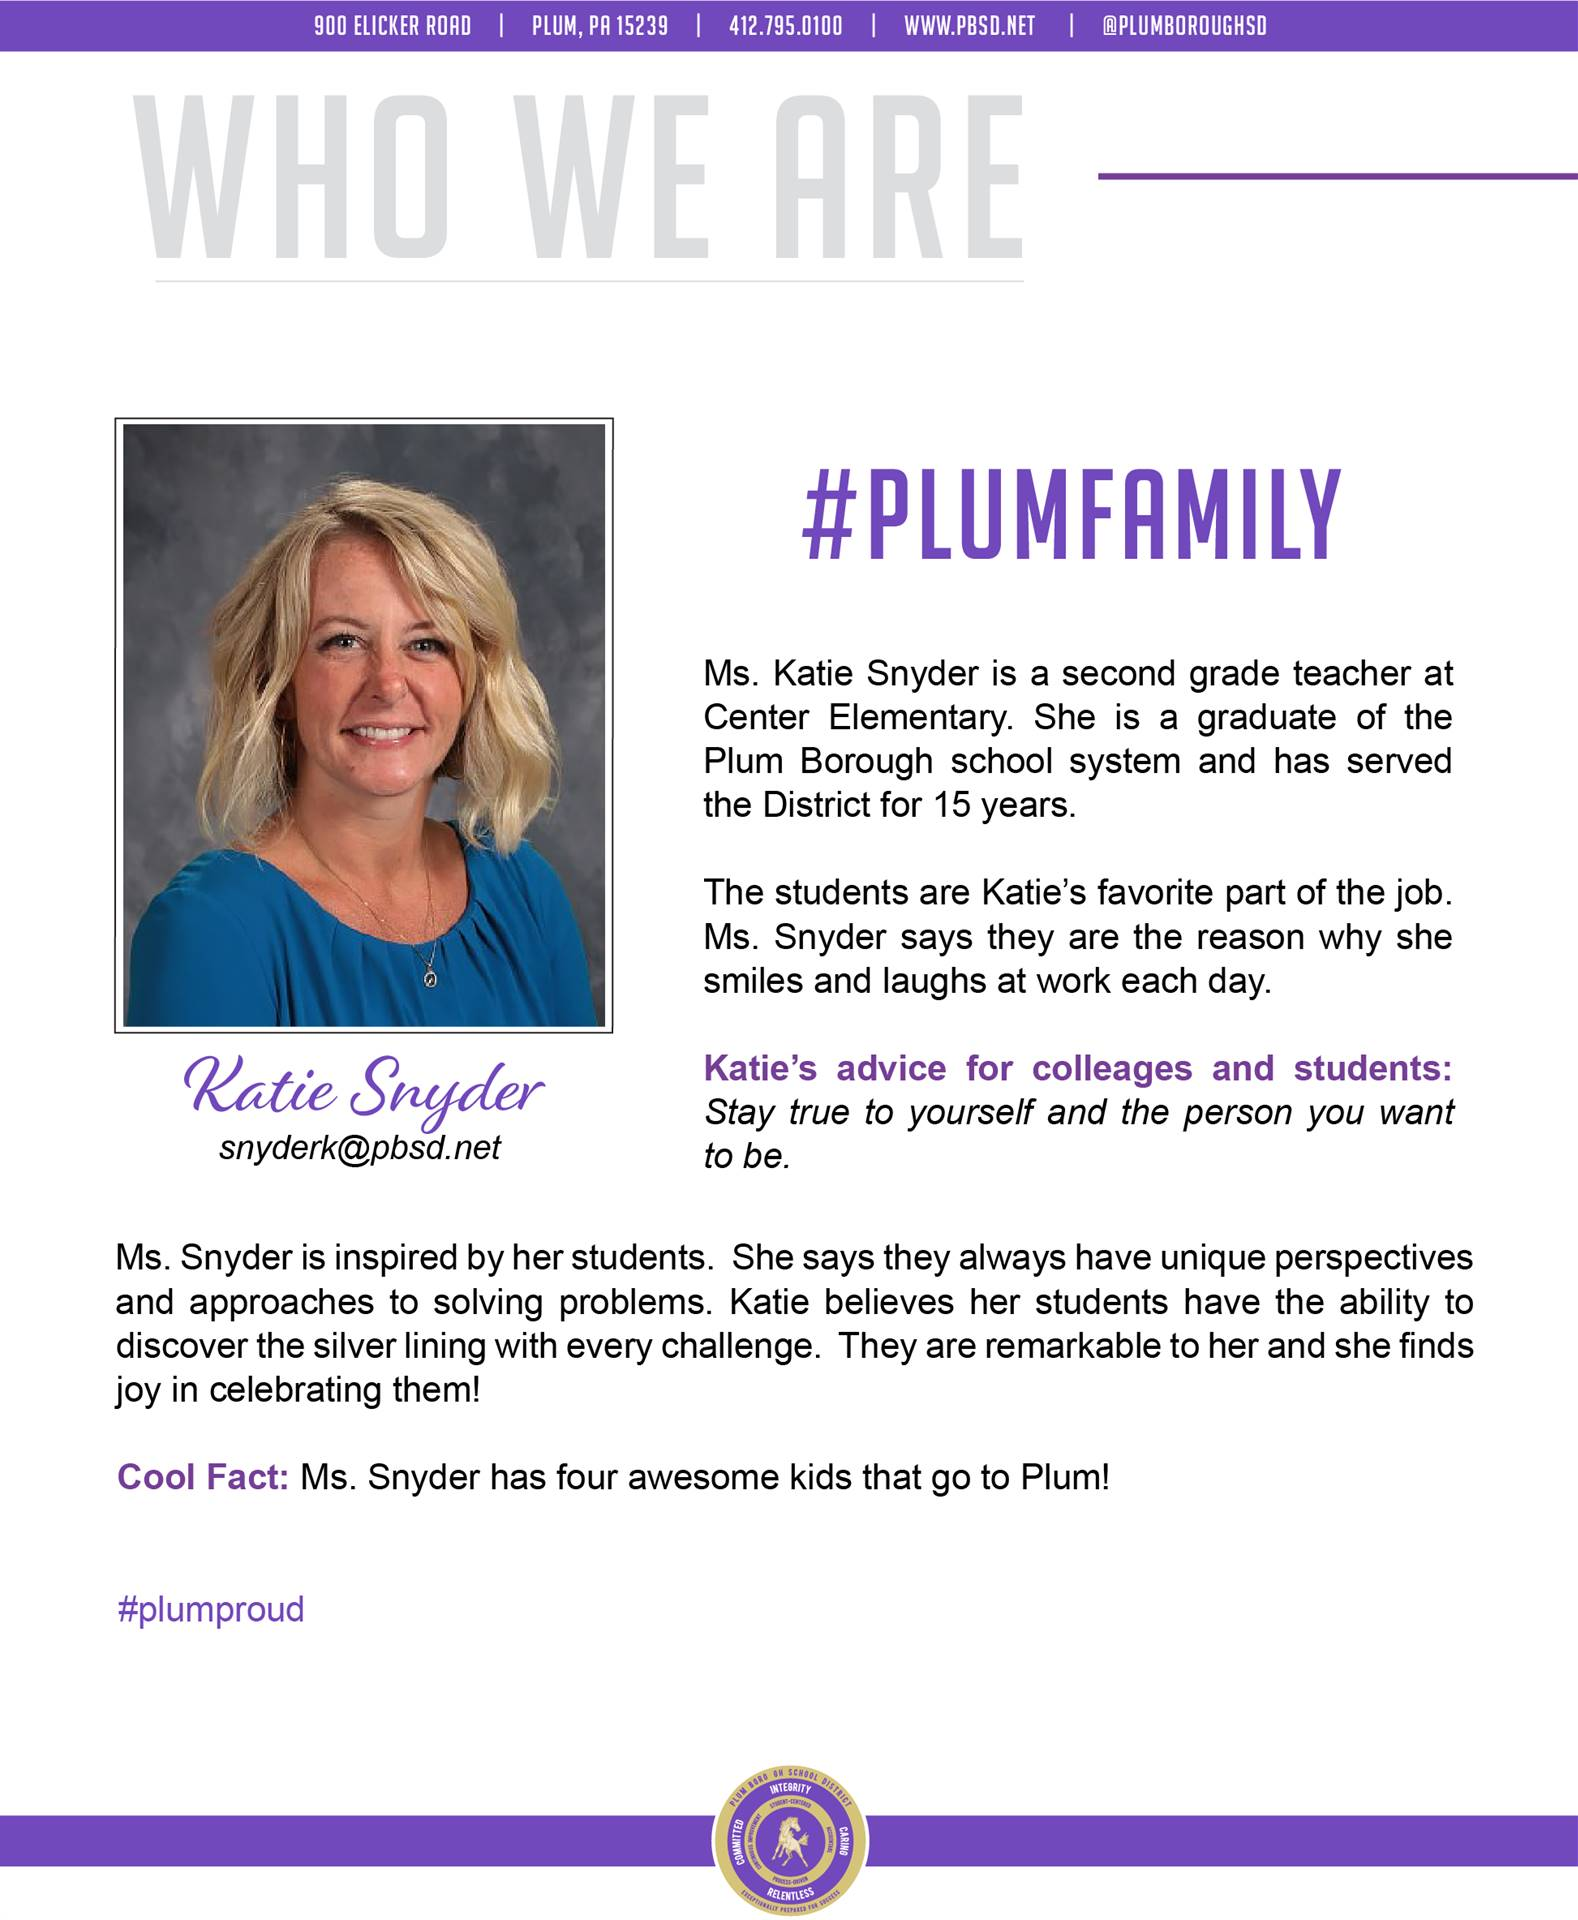 Who We Are Wednesday features Katie Snyder.